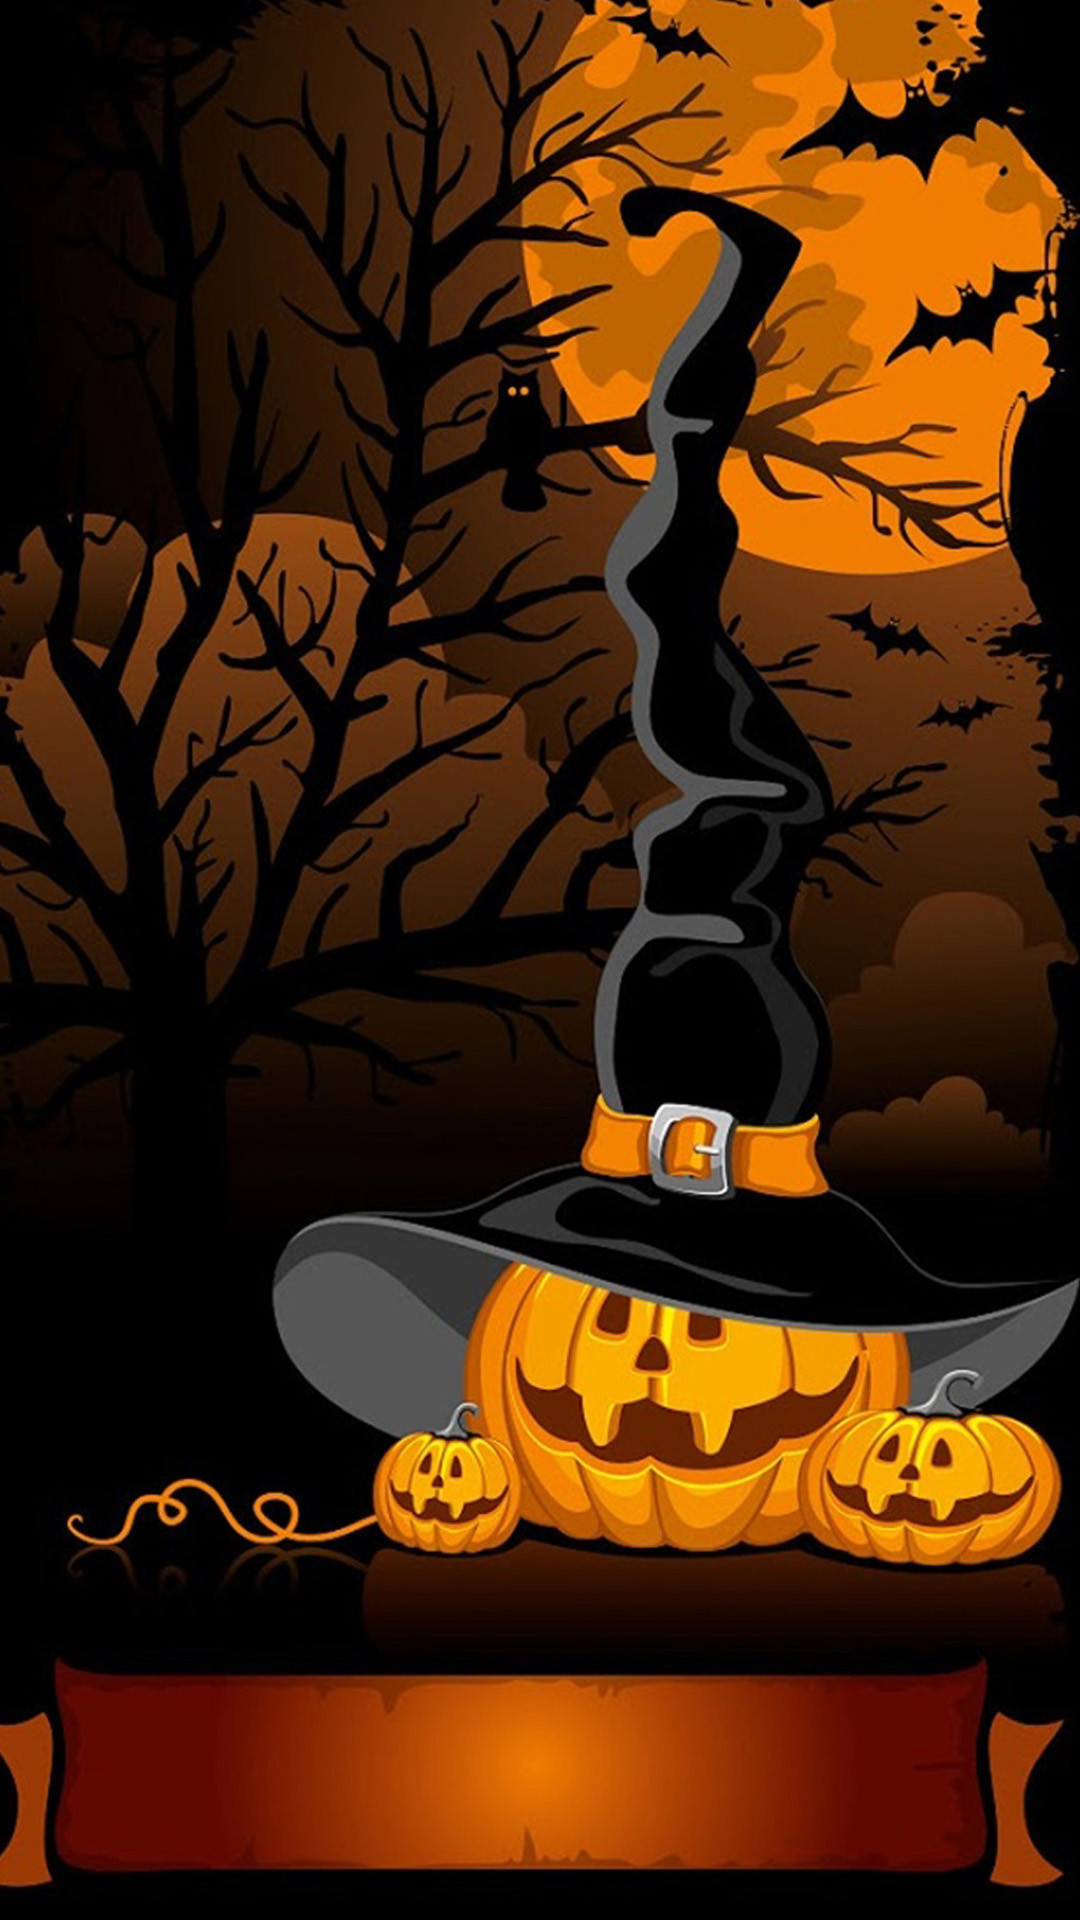 witchy halloween wallpaper witchy night halloween Car Pictures .